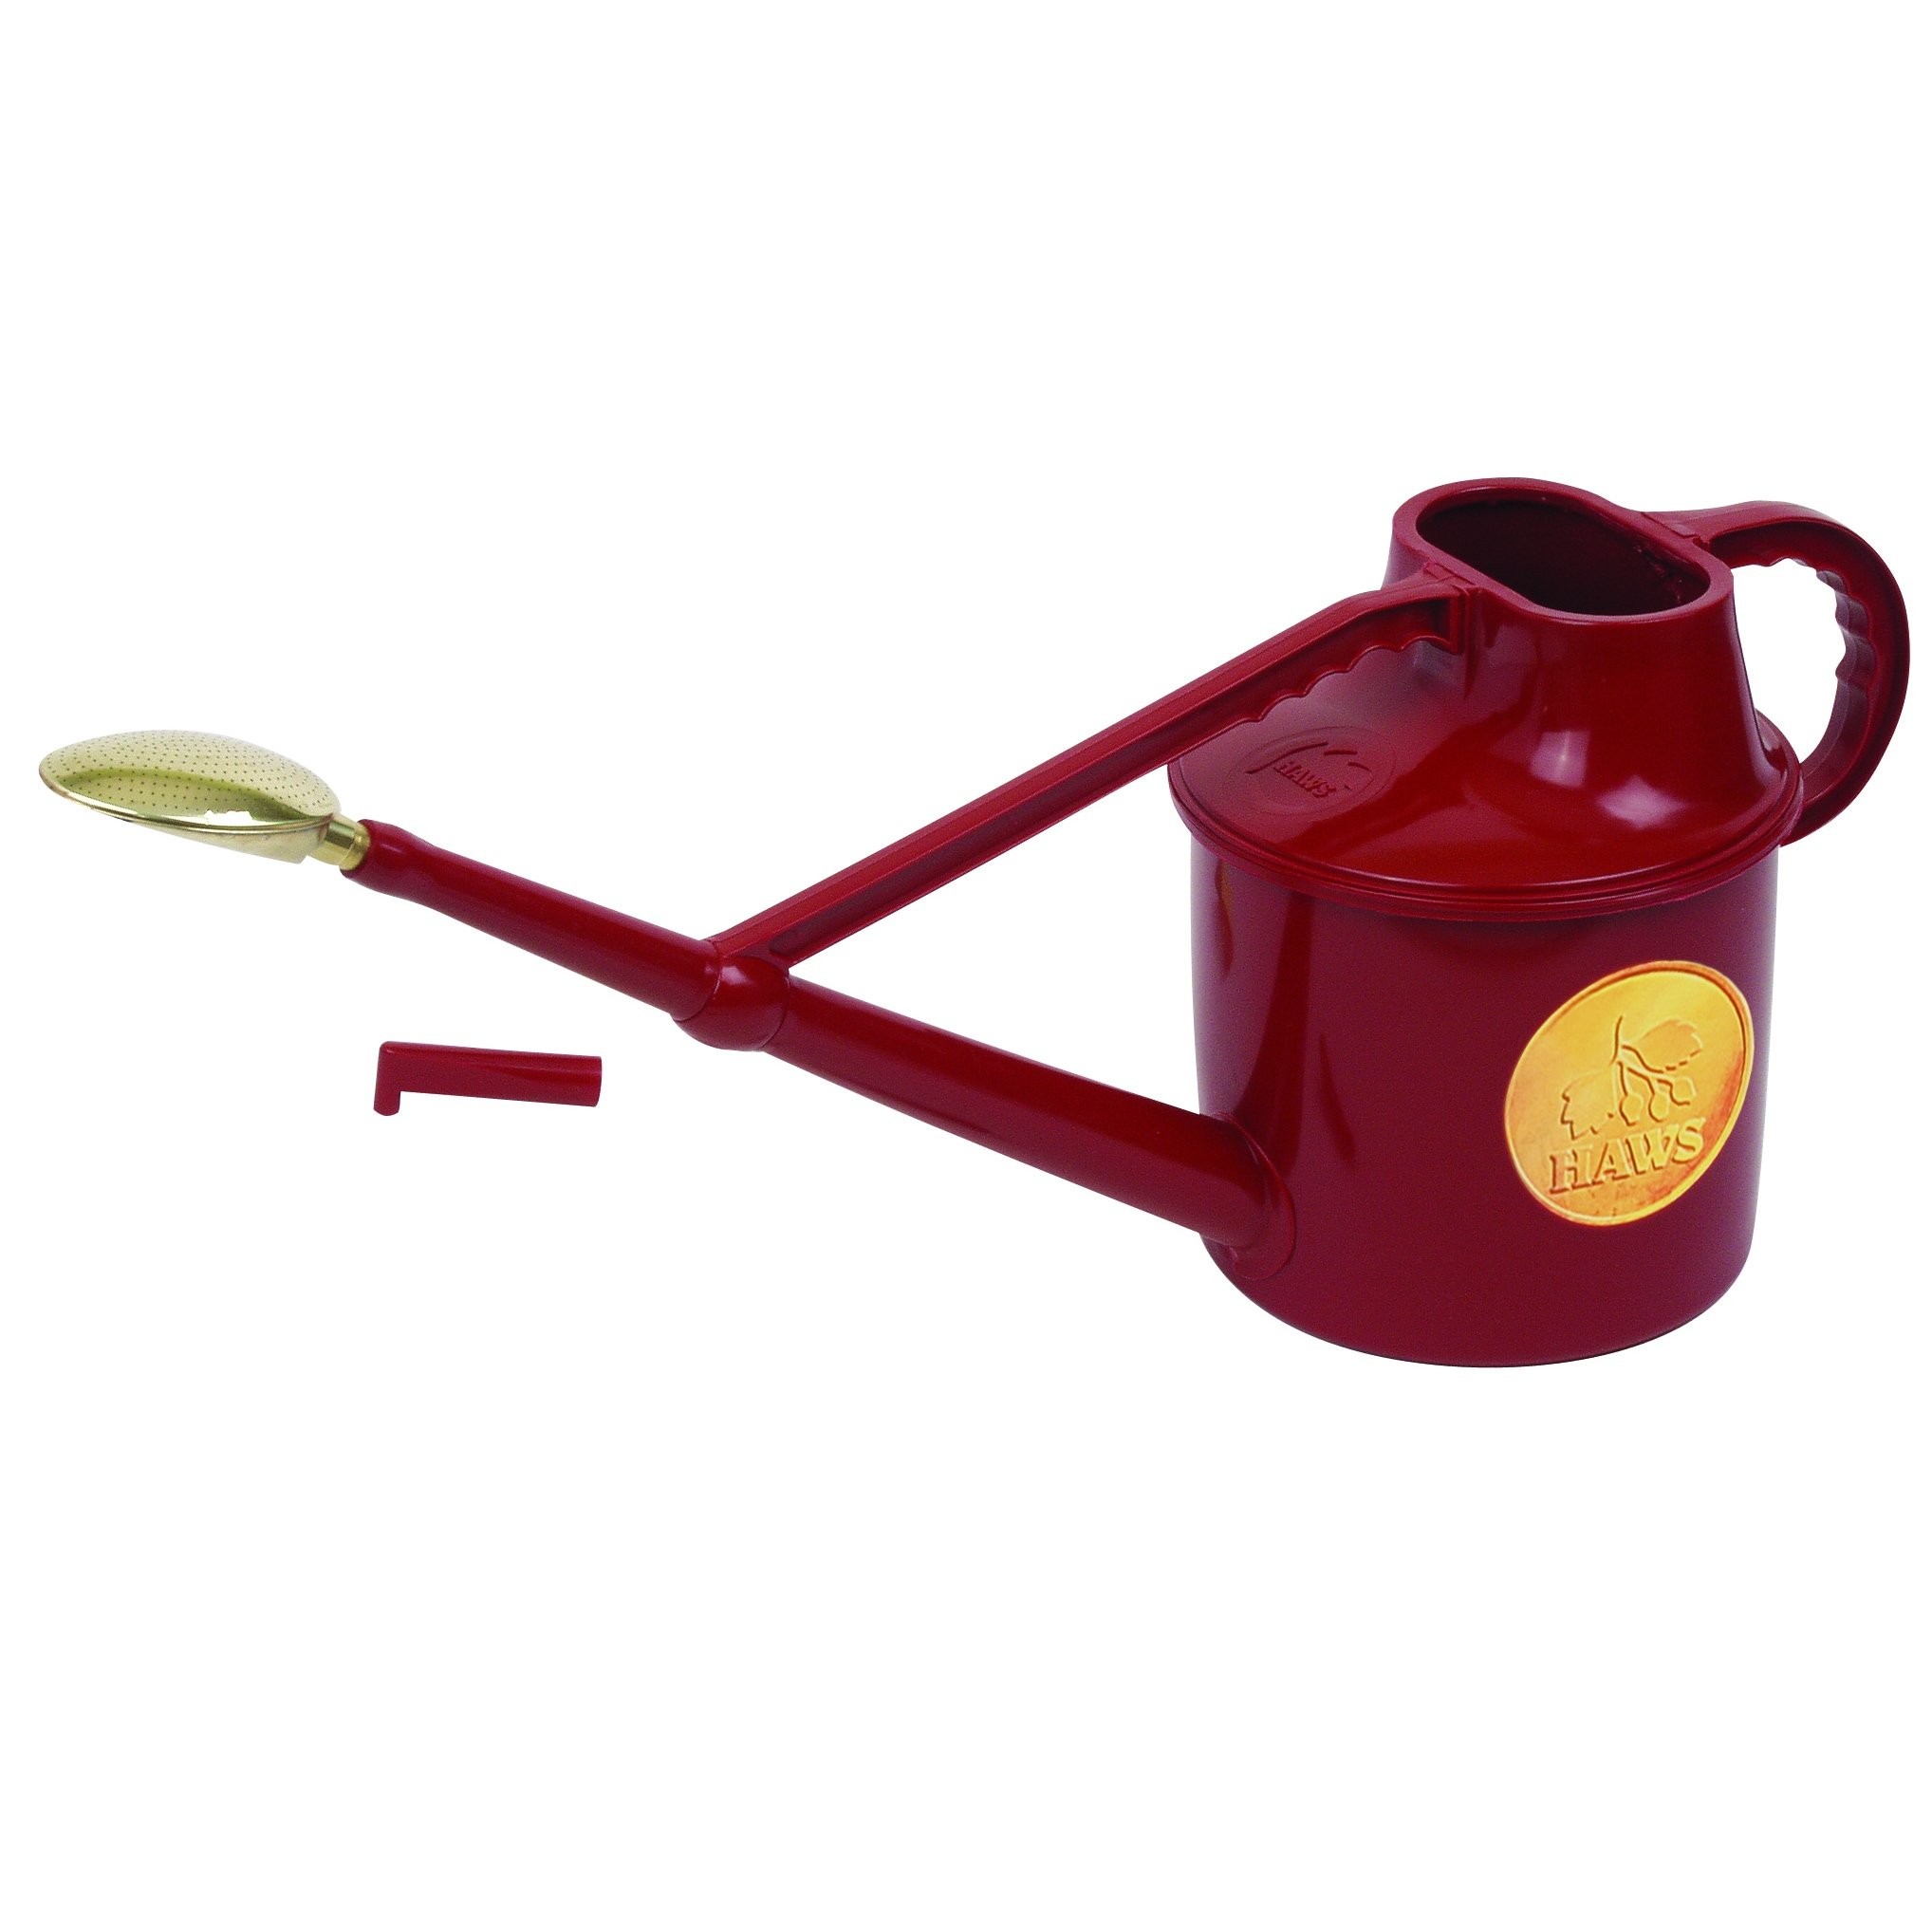 Haws English Garden Deluxe 1.8 Gallon Plastic Watering Can Red